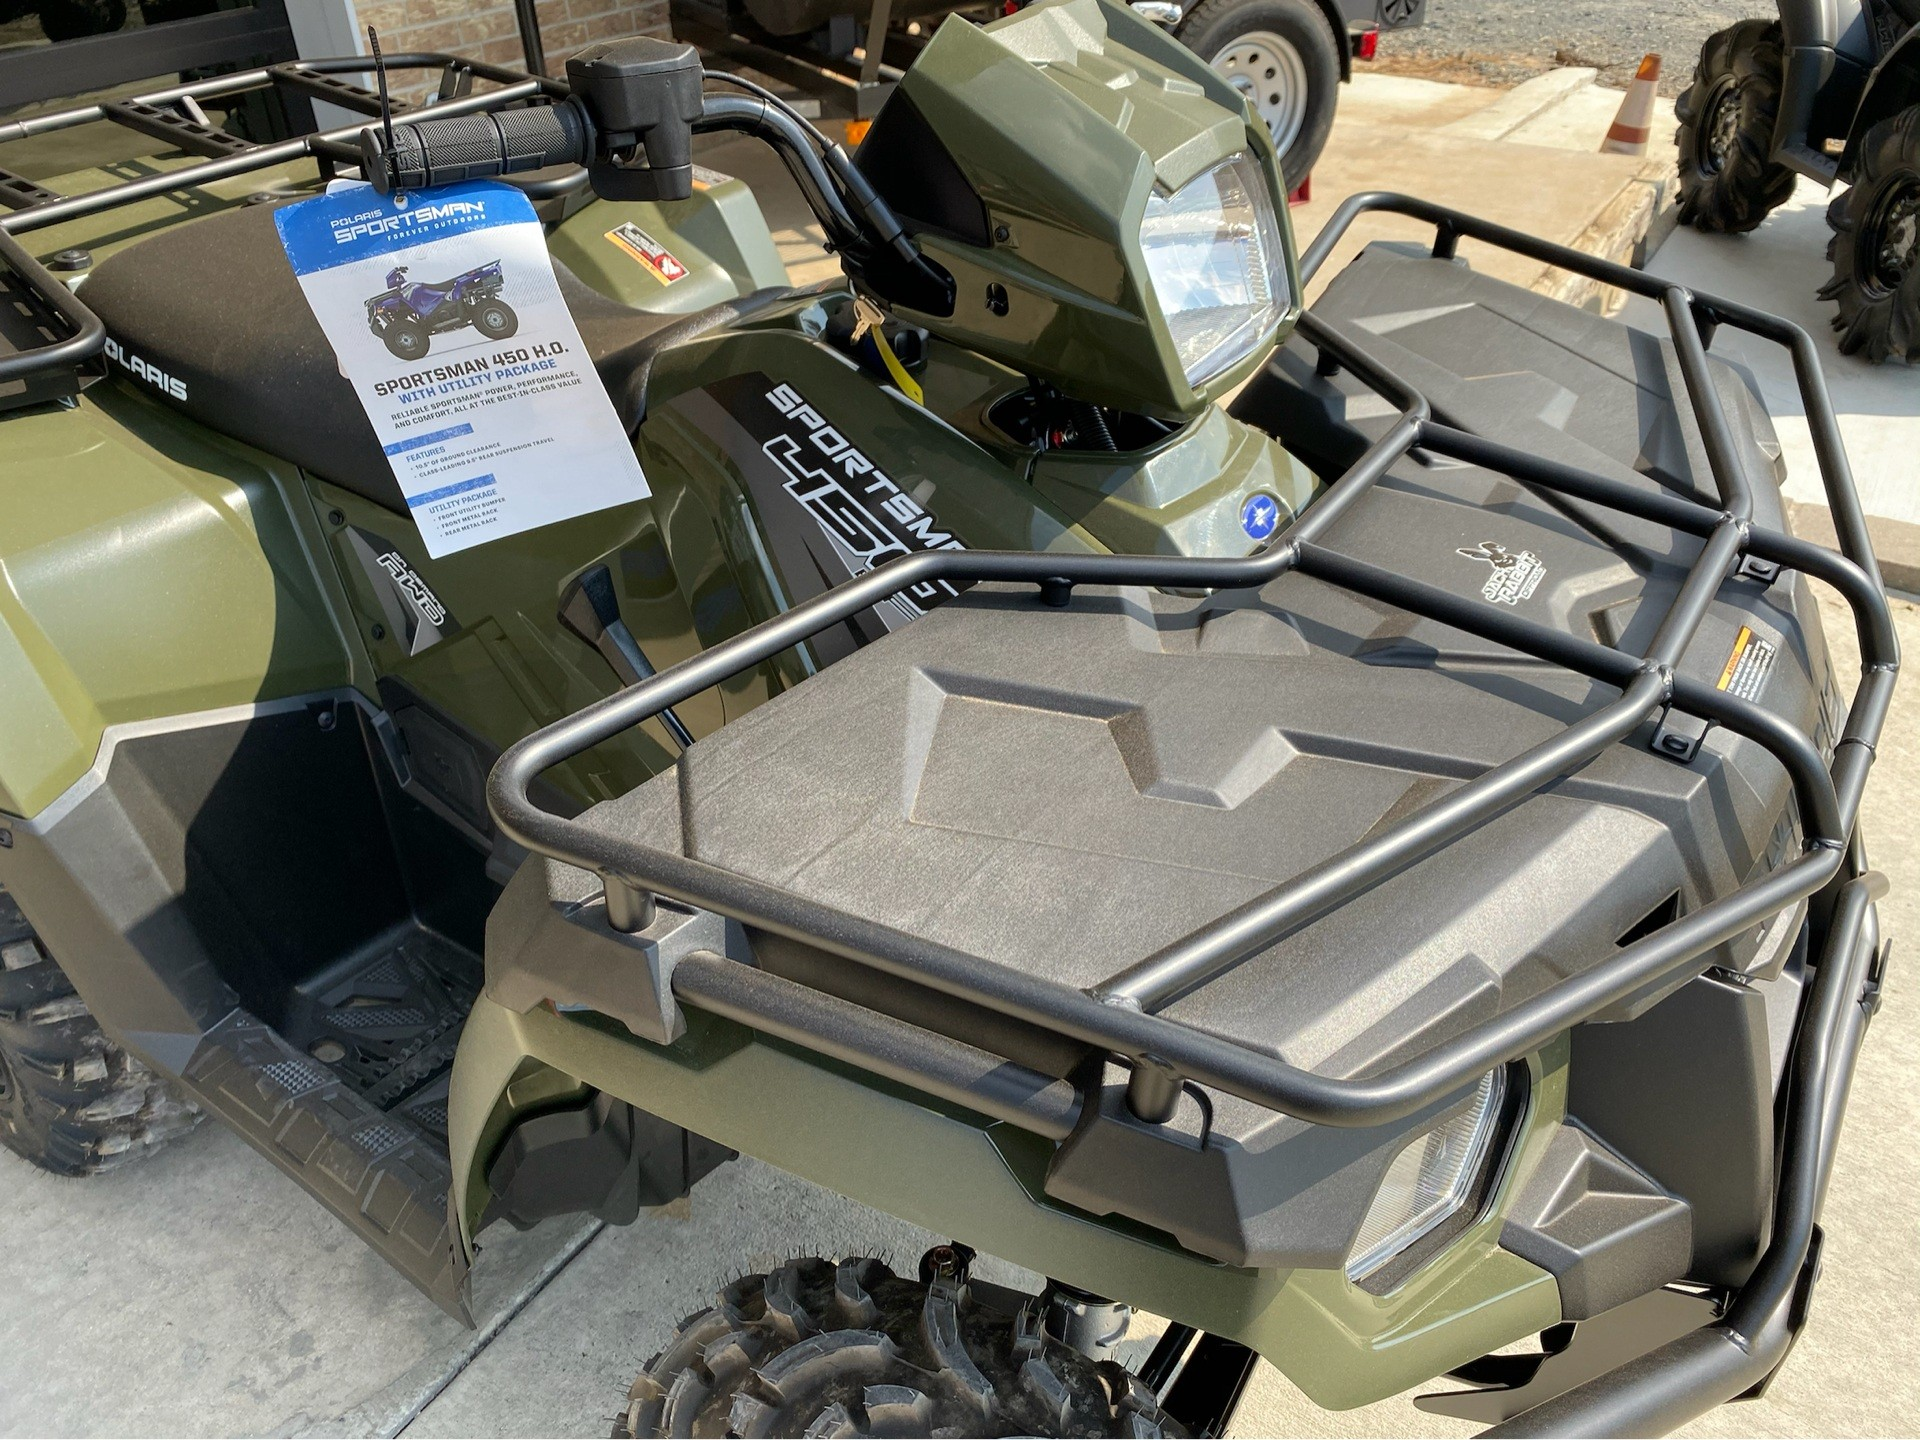 2020 Polaris Sportsman 450 H.O. Utility Package in Marshall, Texas - Photo 6